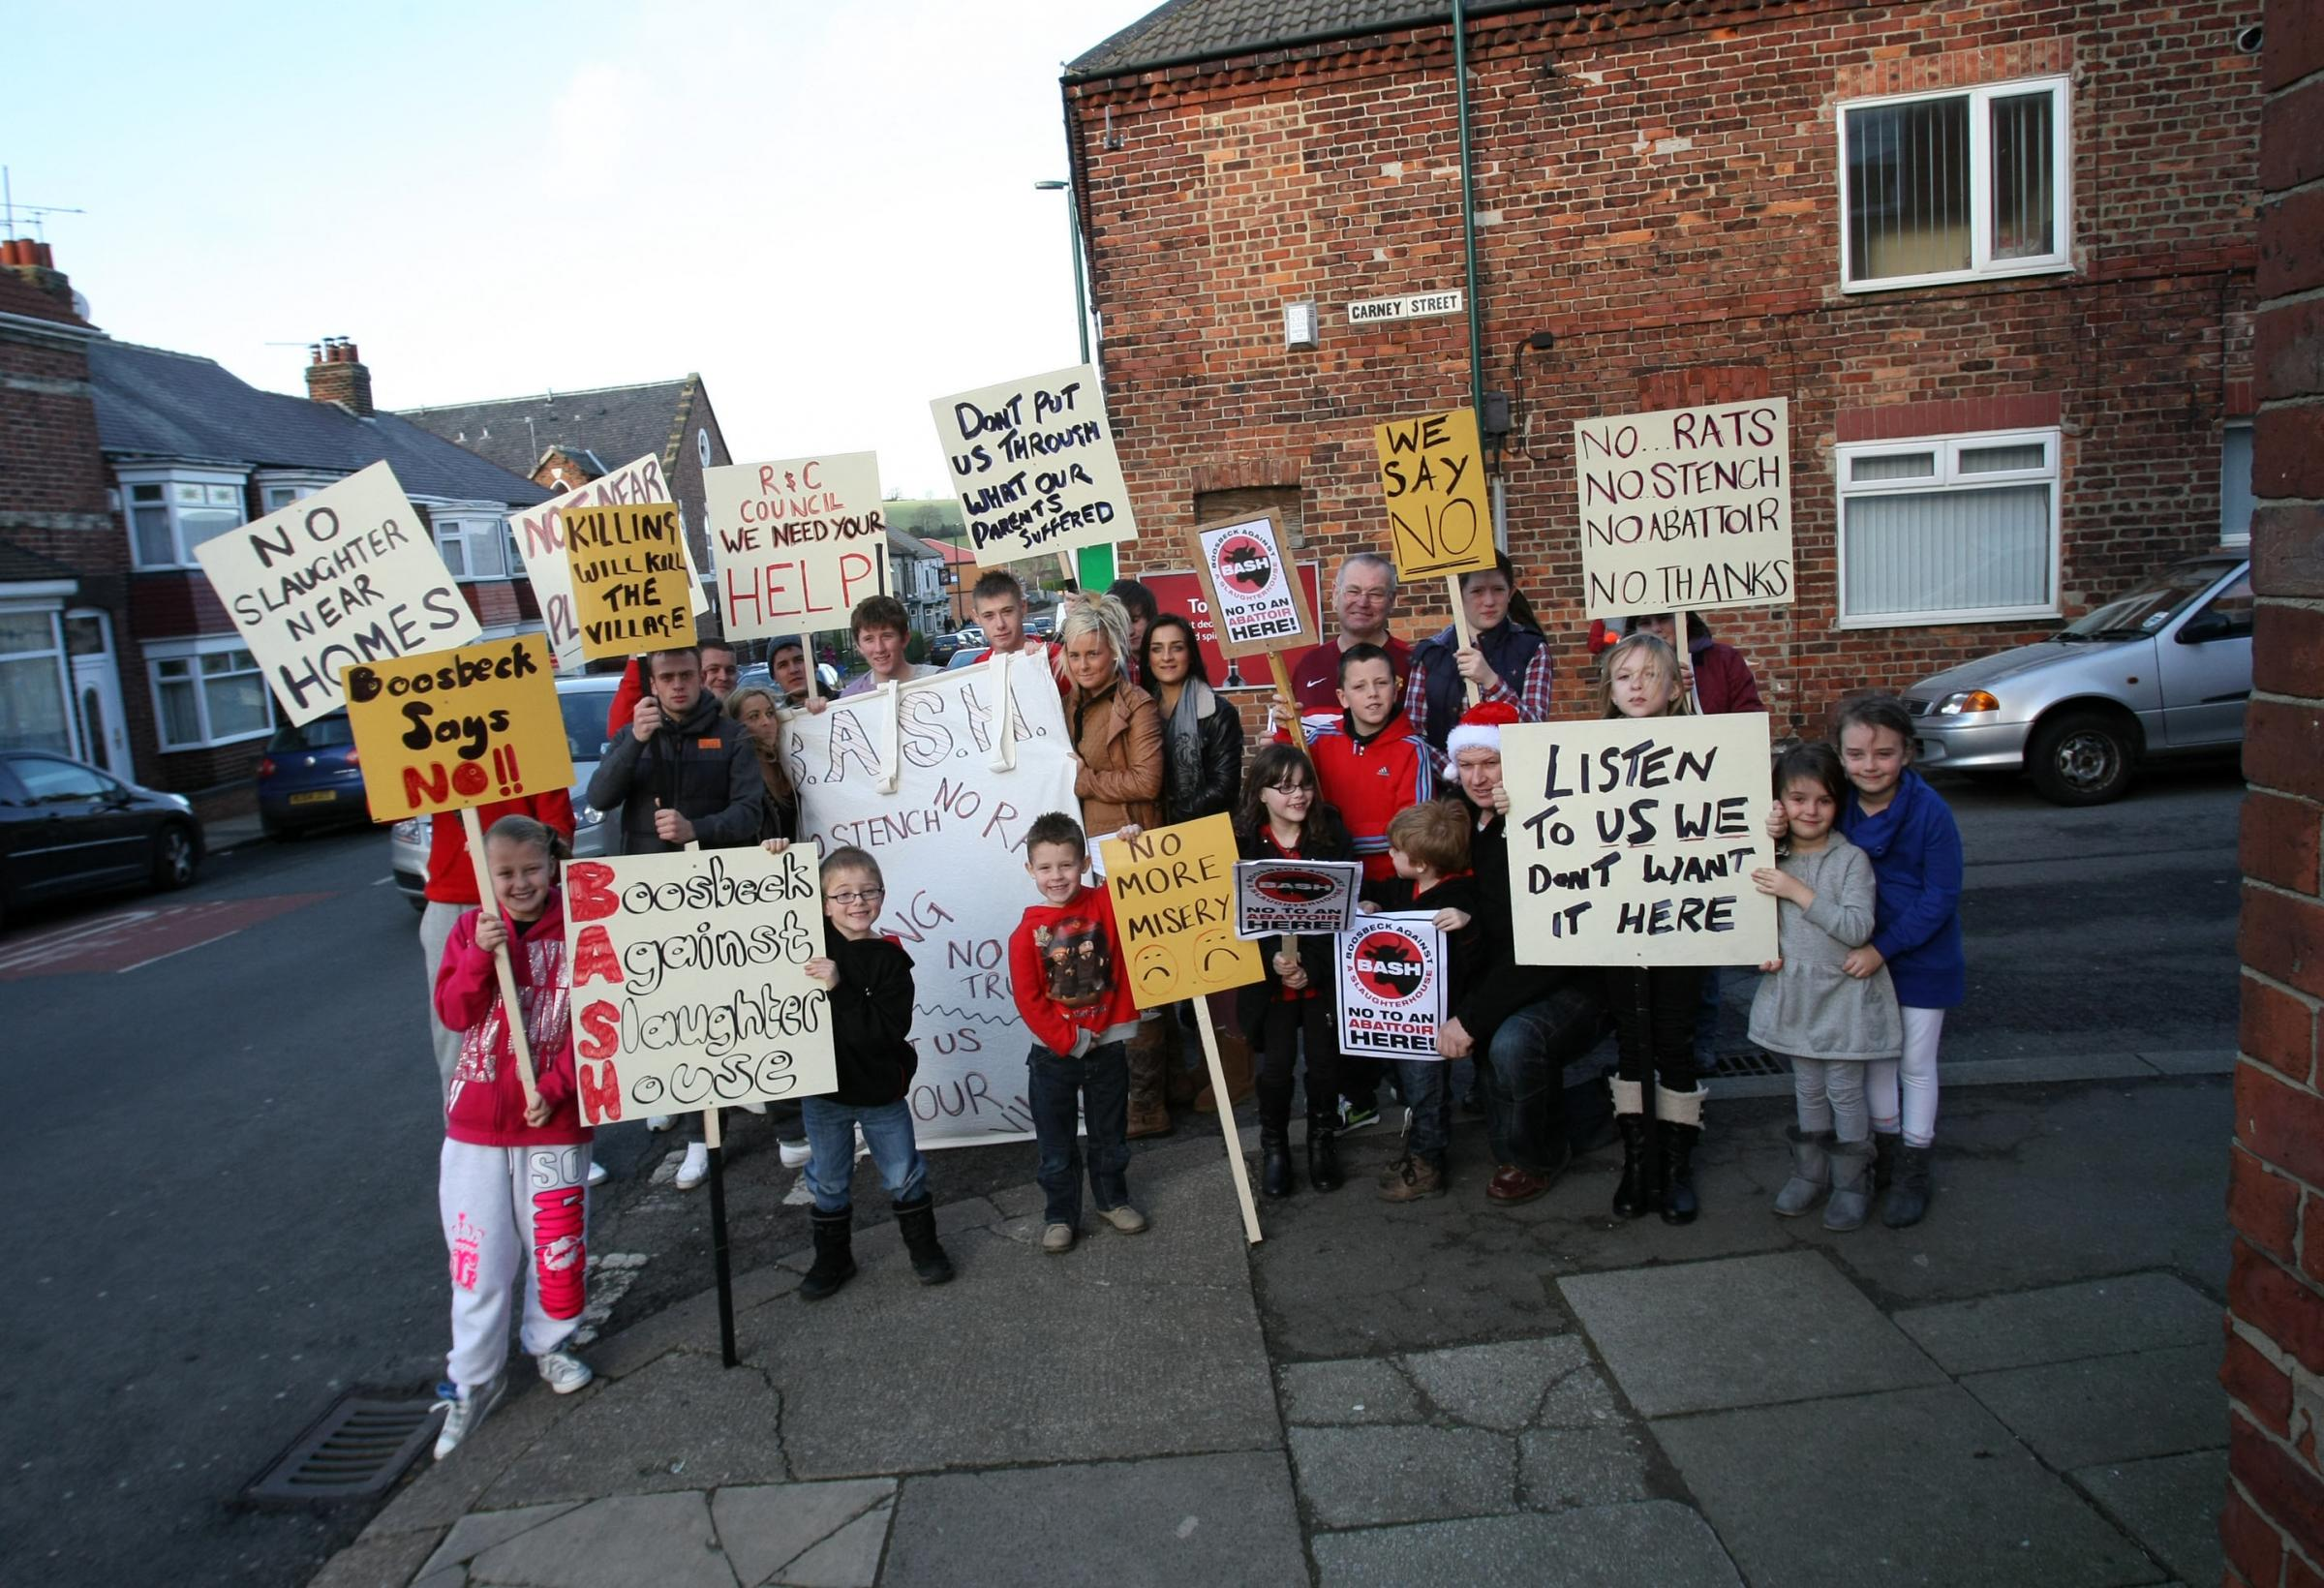 Residents of Boosbeck protesting against the re-opening of a slaughterhouse on the high-street.